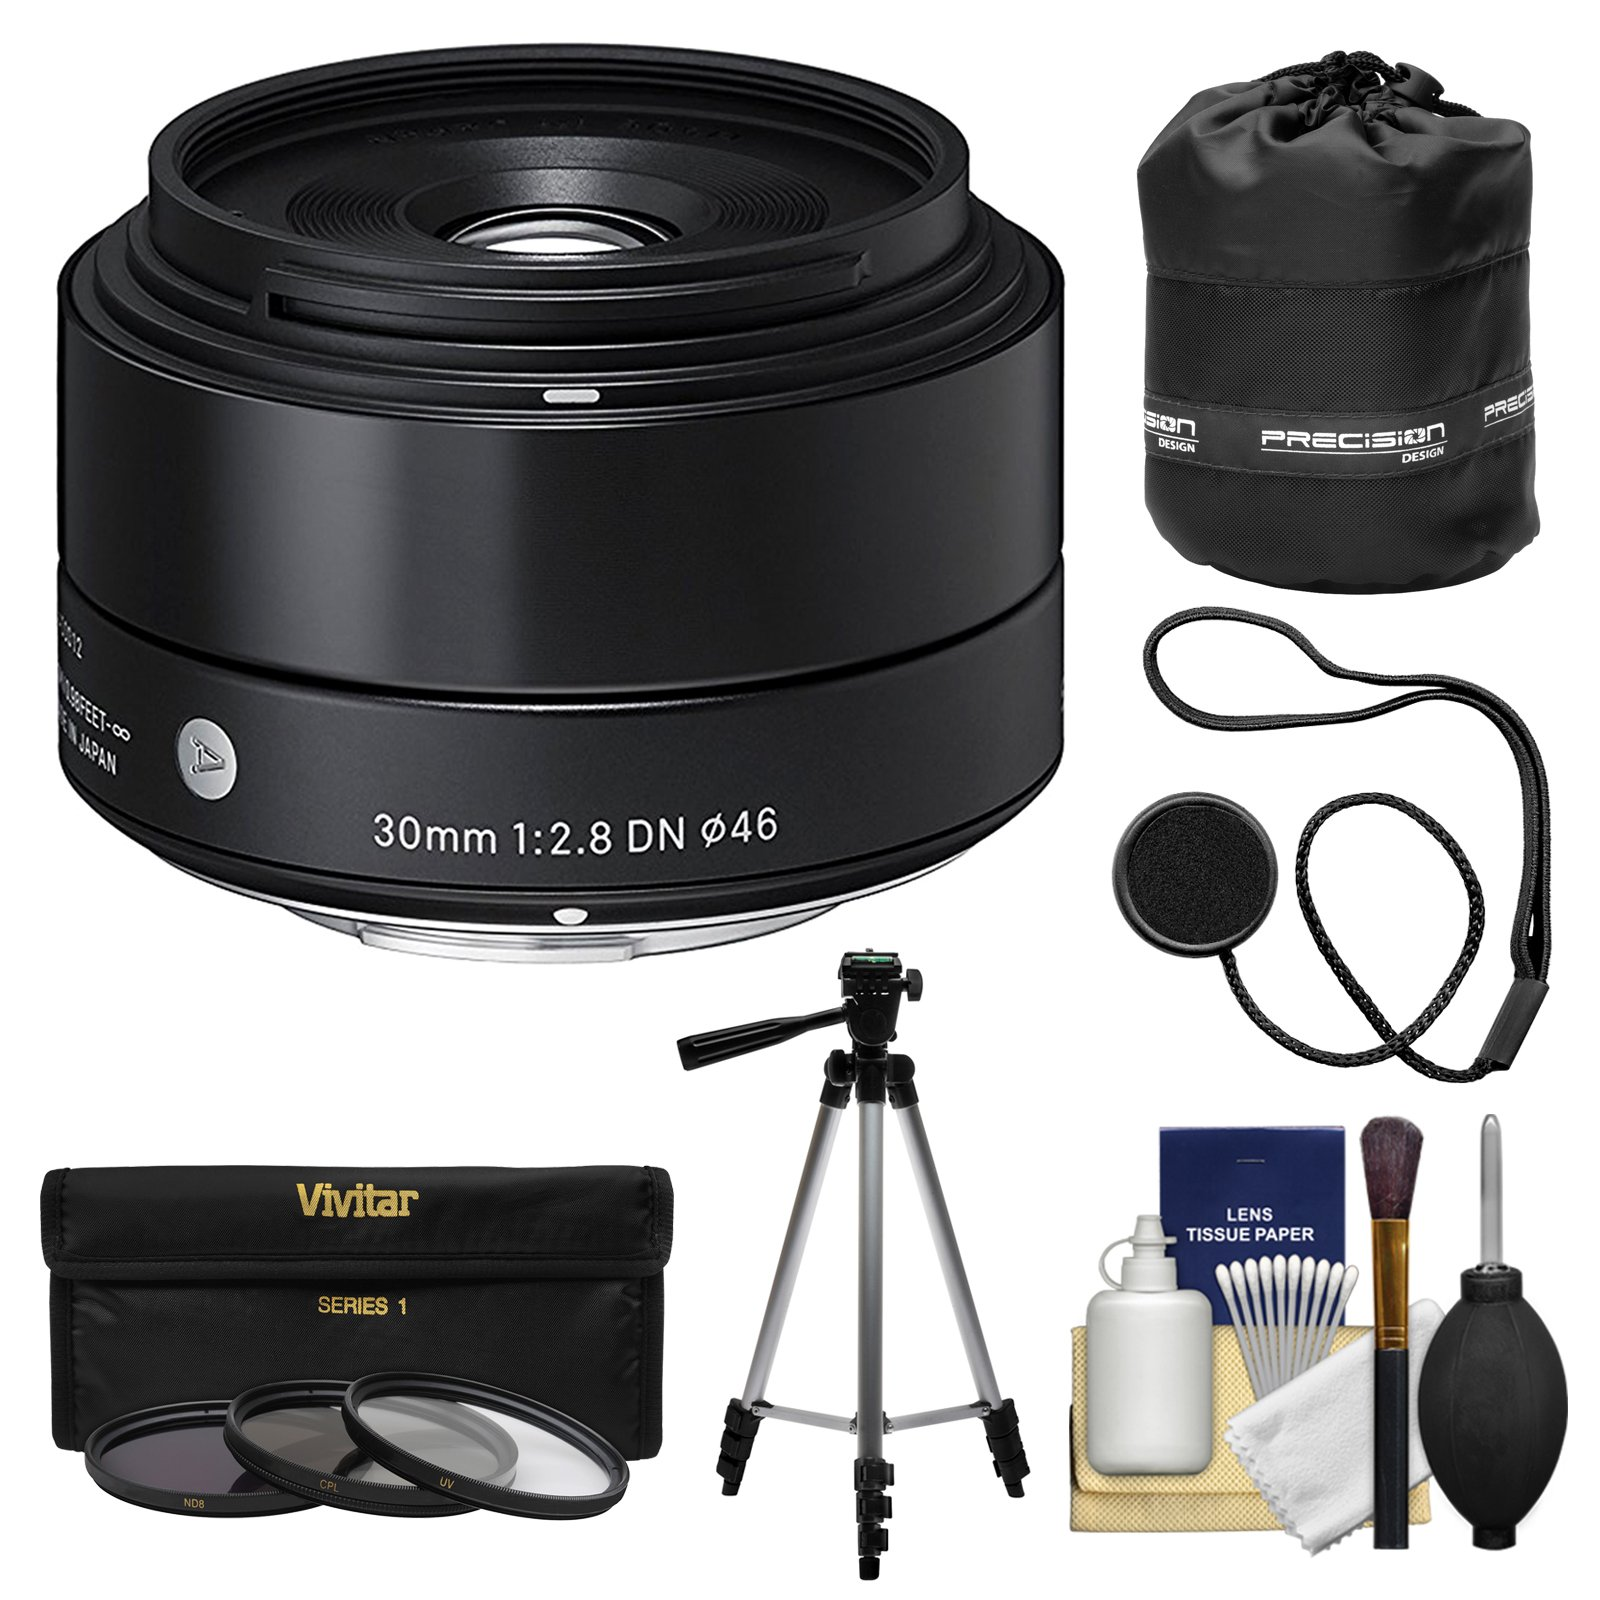 Sigma 30mm f/2.8 Art DN HSM Lens with 3 UV/ND8/CPL Filters + Tripod + Pouch Kit for Olympus/Panasonic Micro 4/3 Cameras